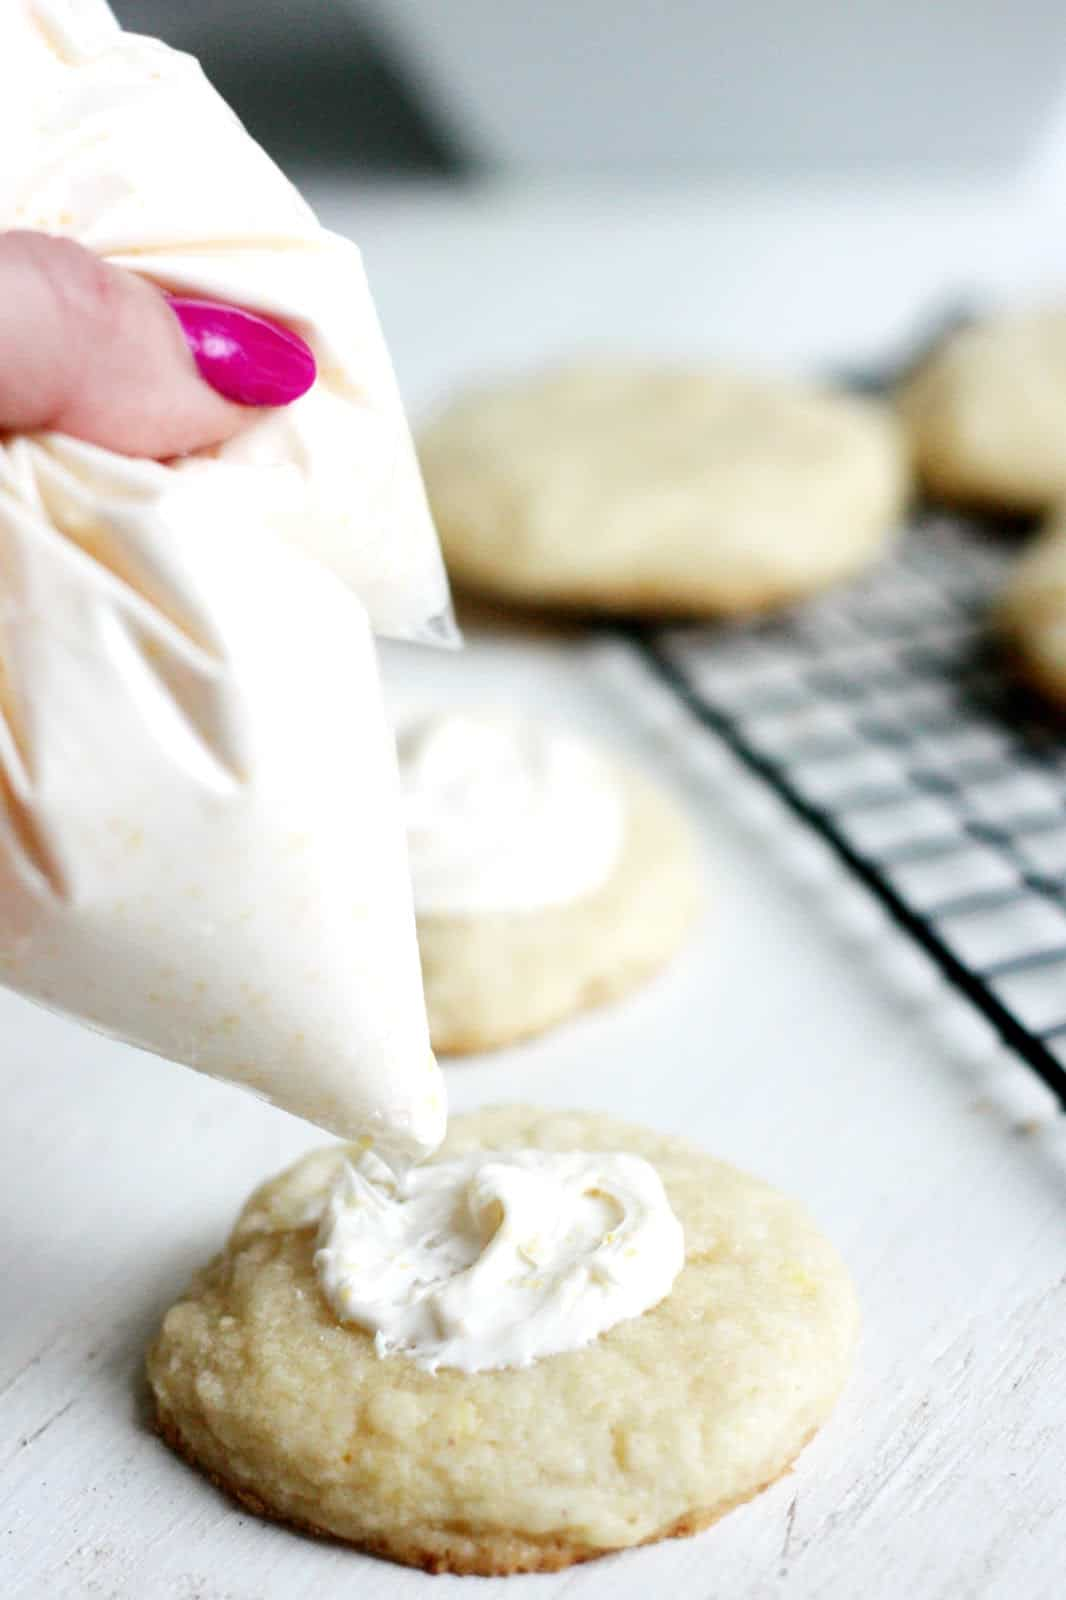 Spreading cream cheese icing on the top of a lemon cookie